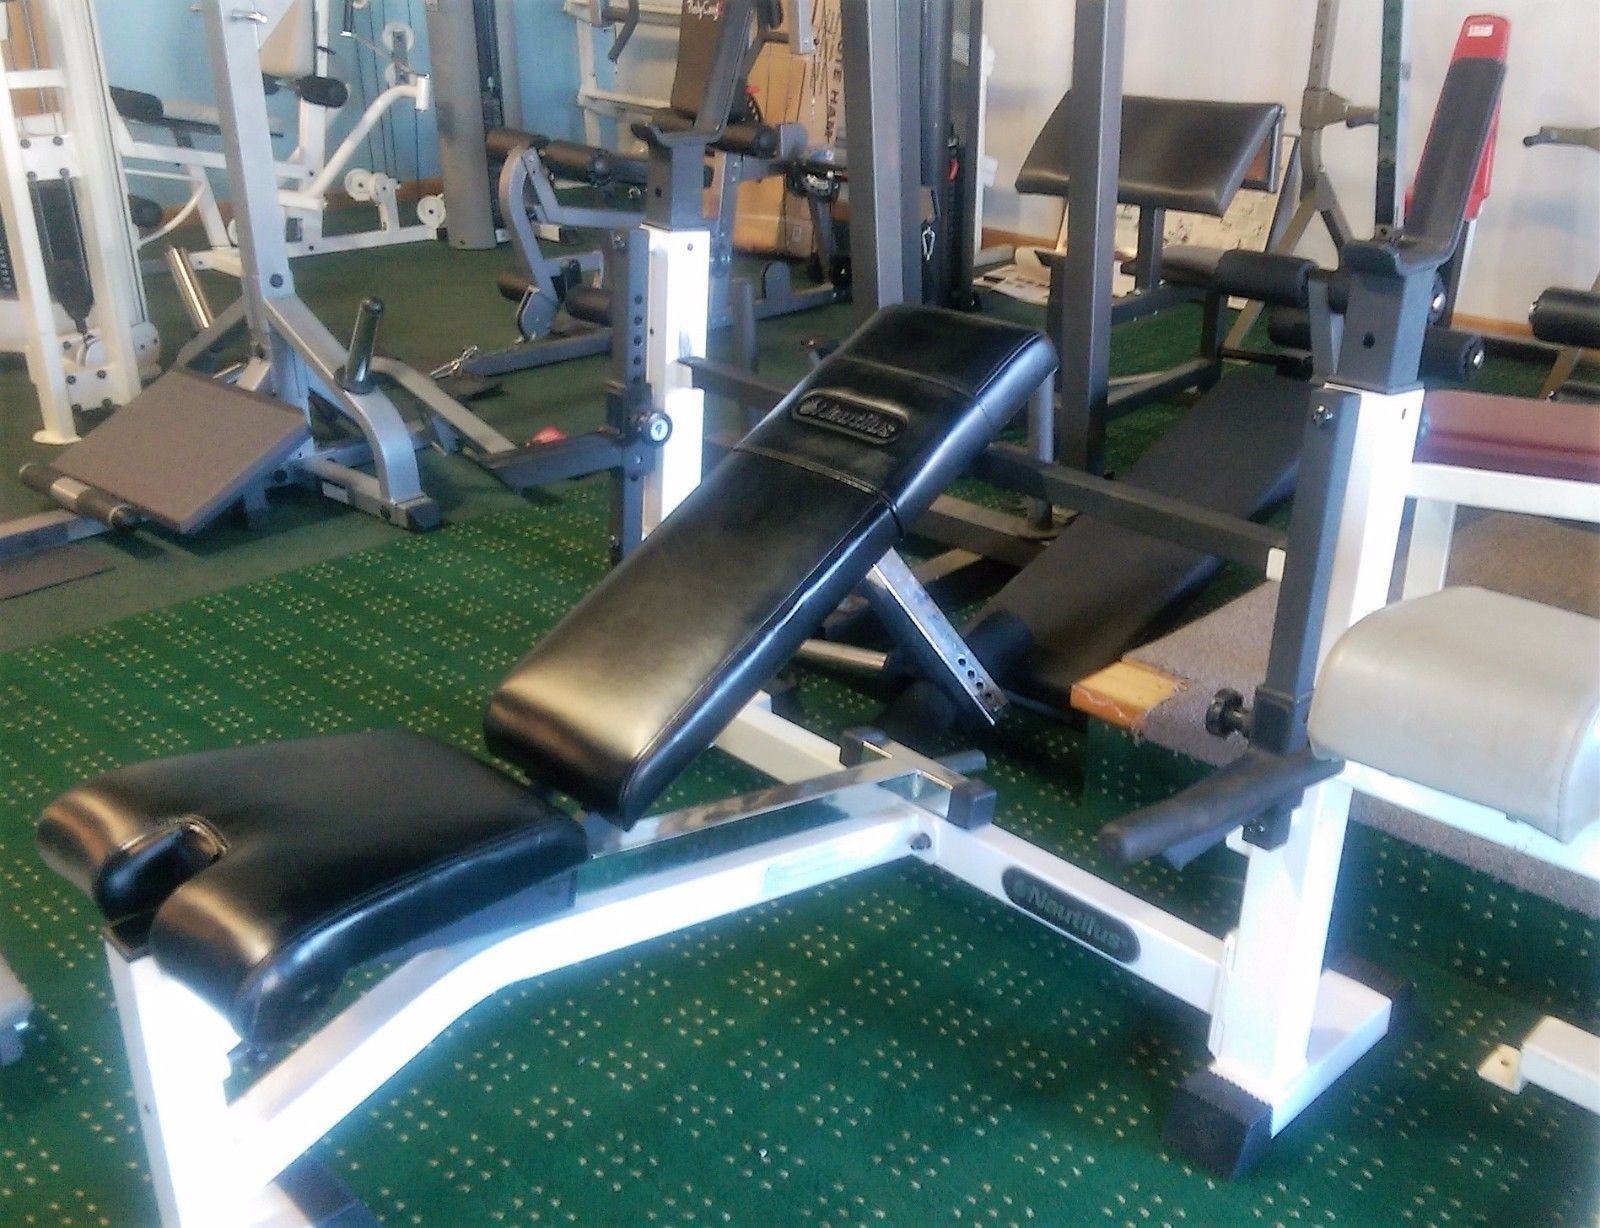 Weight Bench Olympic Adjustable By Nautilus Ebay Weight Benches Olympics Nautilus